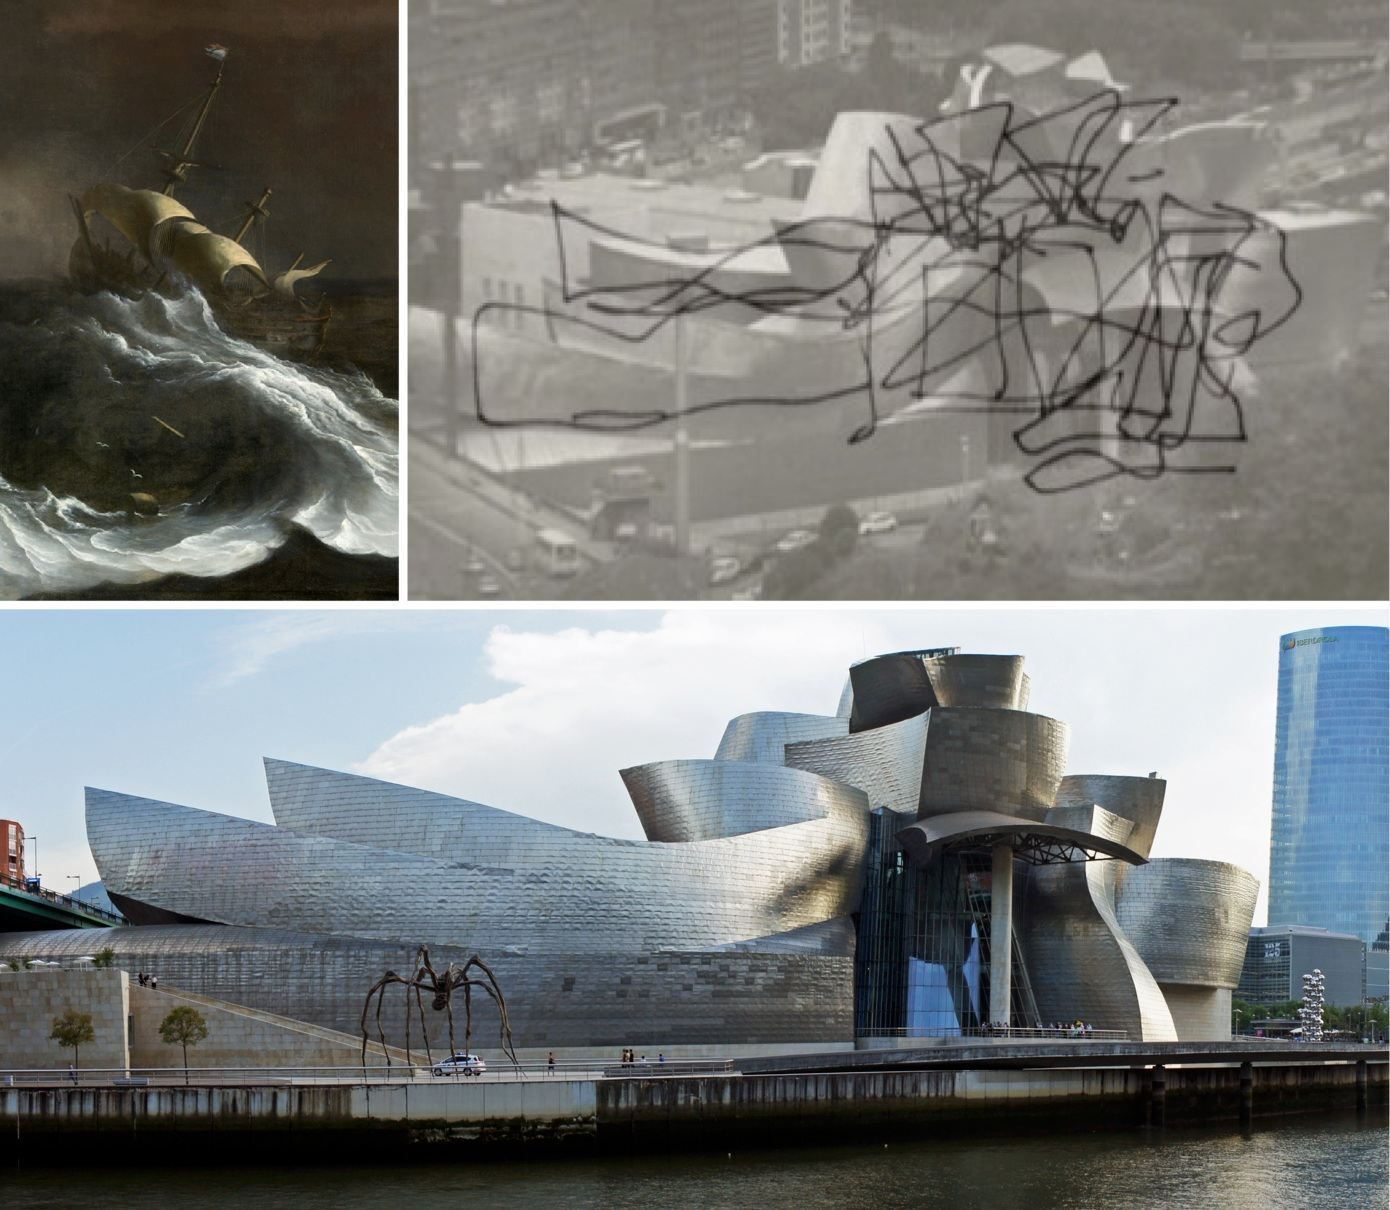 The design vocabulary of the Guggenheim Bilbao is strongly influenced by the billowing sails and stormy, roiling oceans of Dutch master paintings (top left).